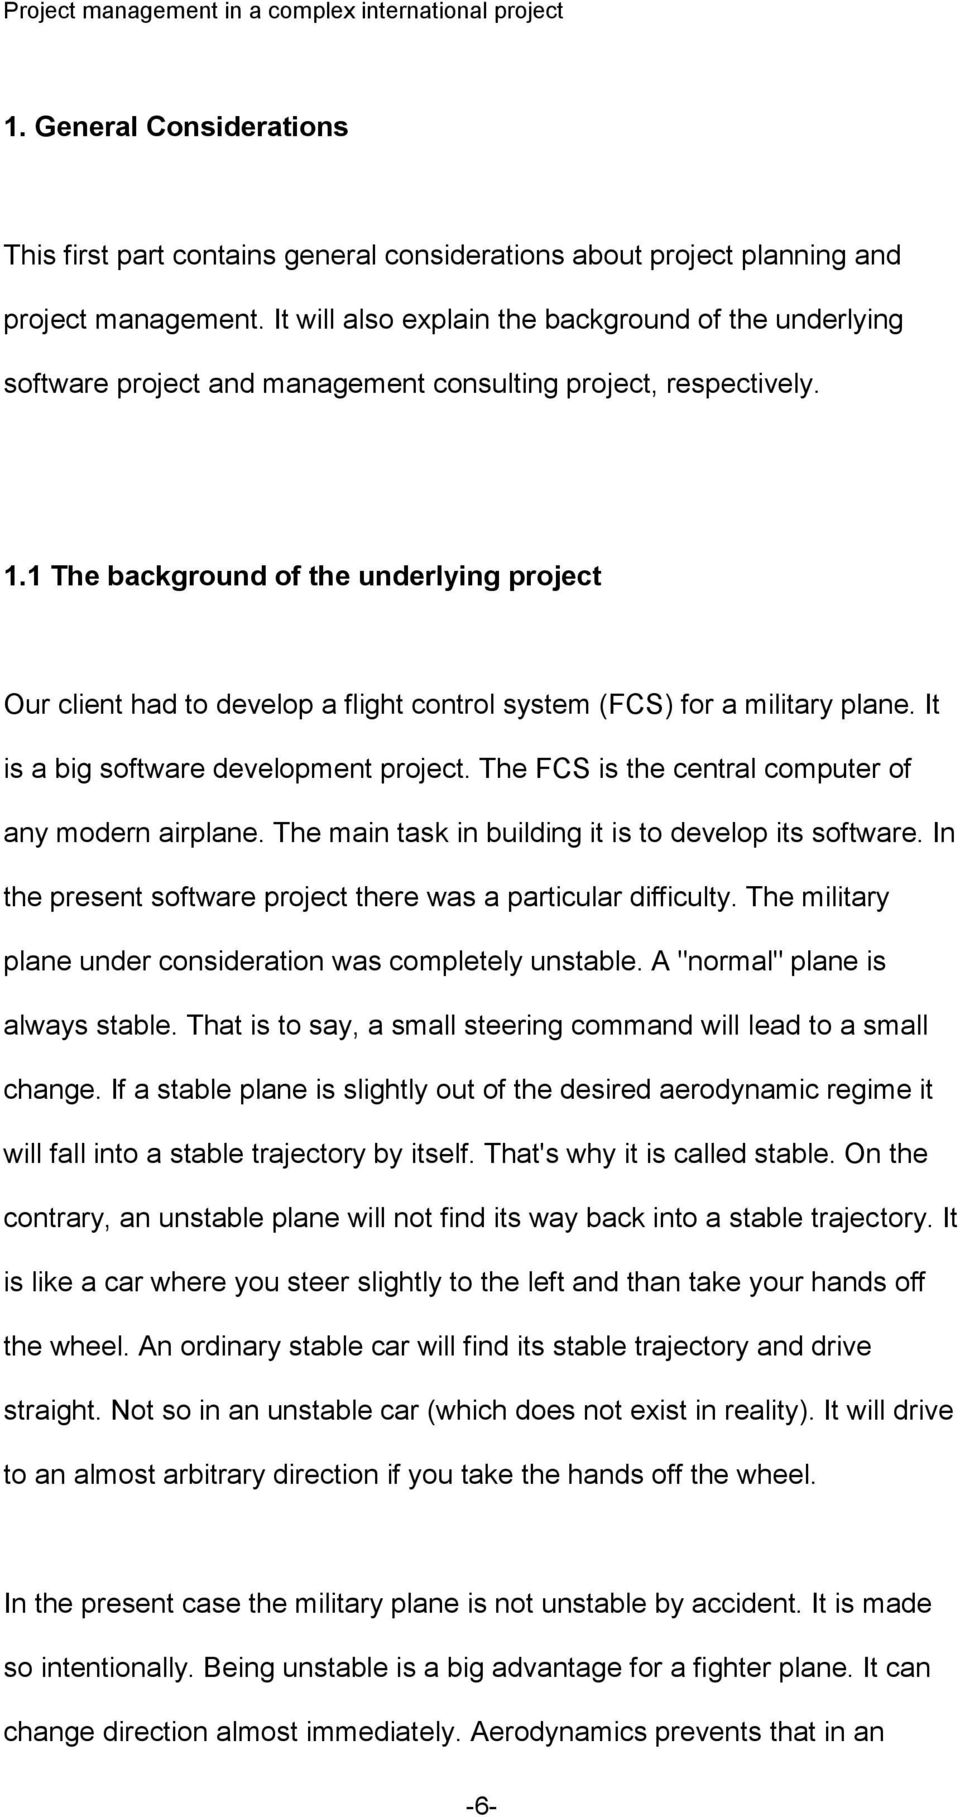 1 The background of the underlying project Our client had to develop a flight control system (FCS) for a military plane. It is a big software development project.